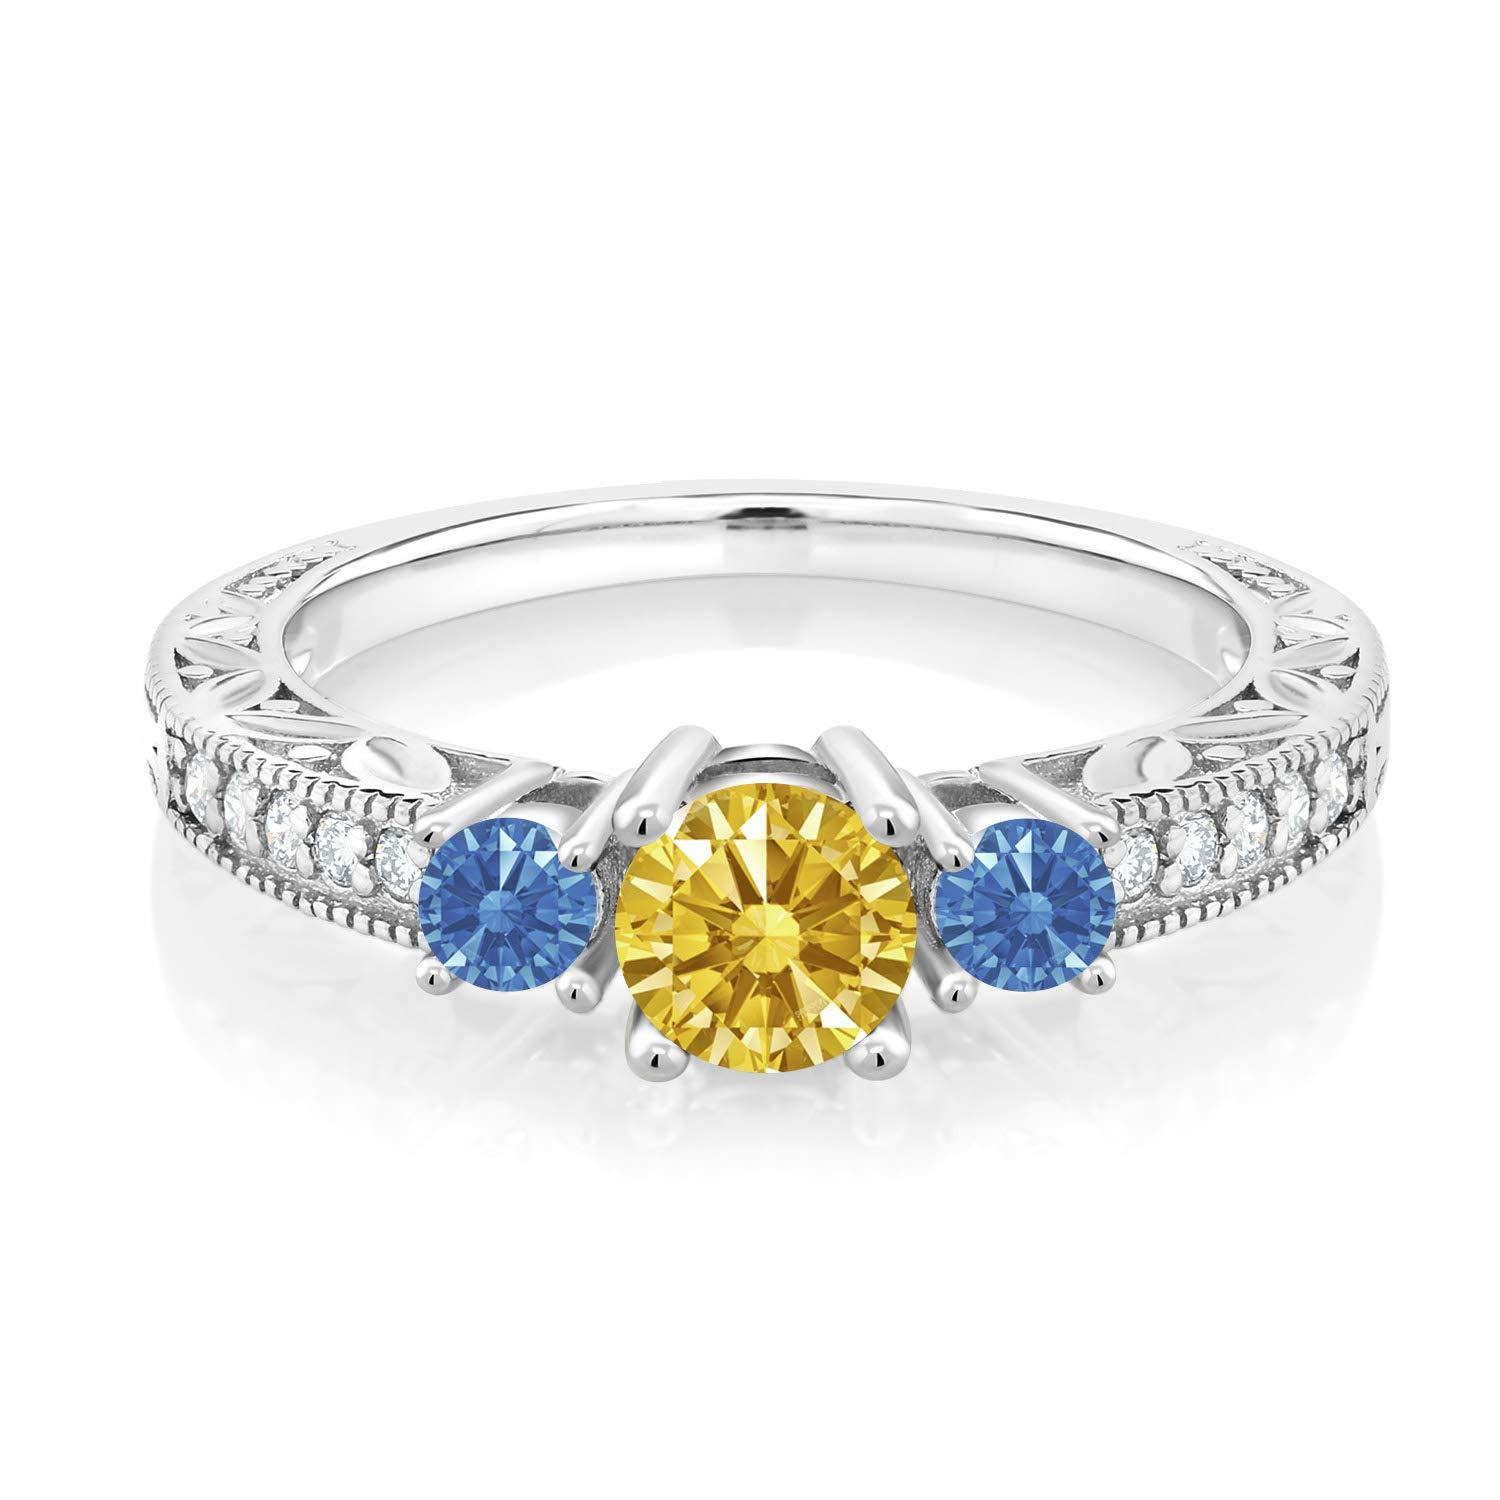 925 Silver 3-Stone Ring 5mm Set with Golden Yellow Zirconia from Swarovski